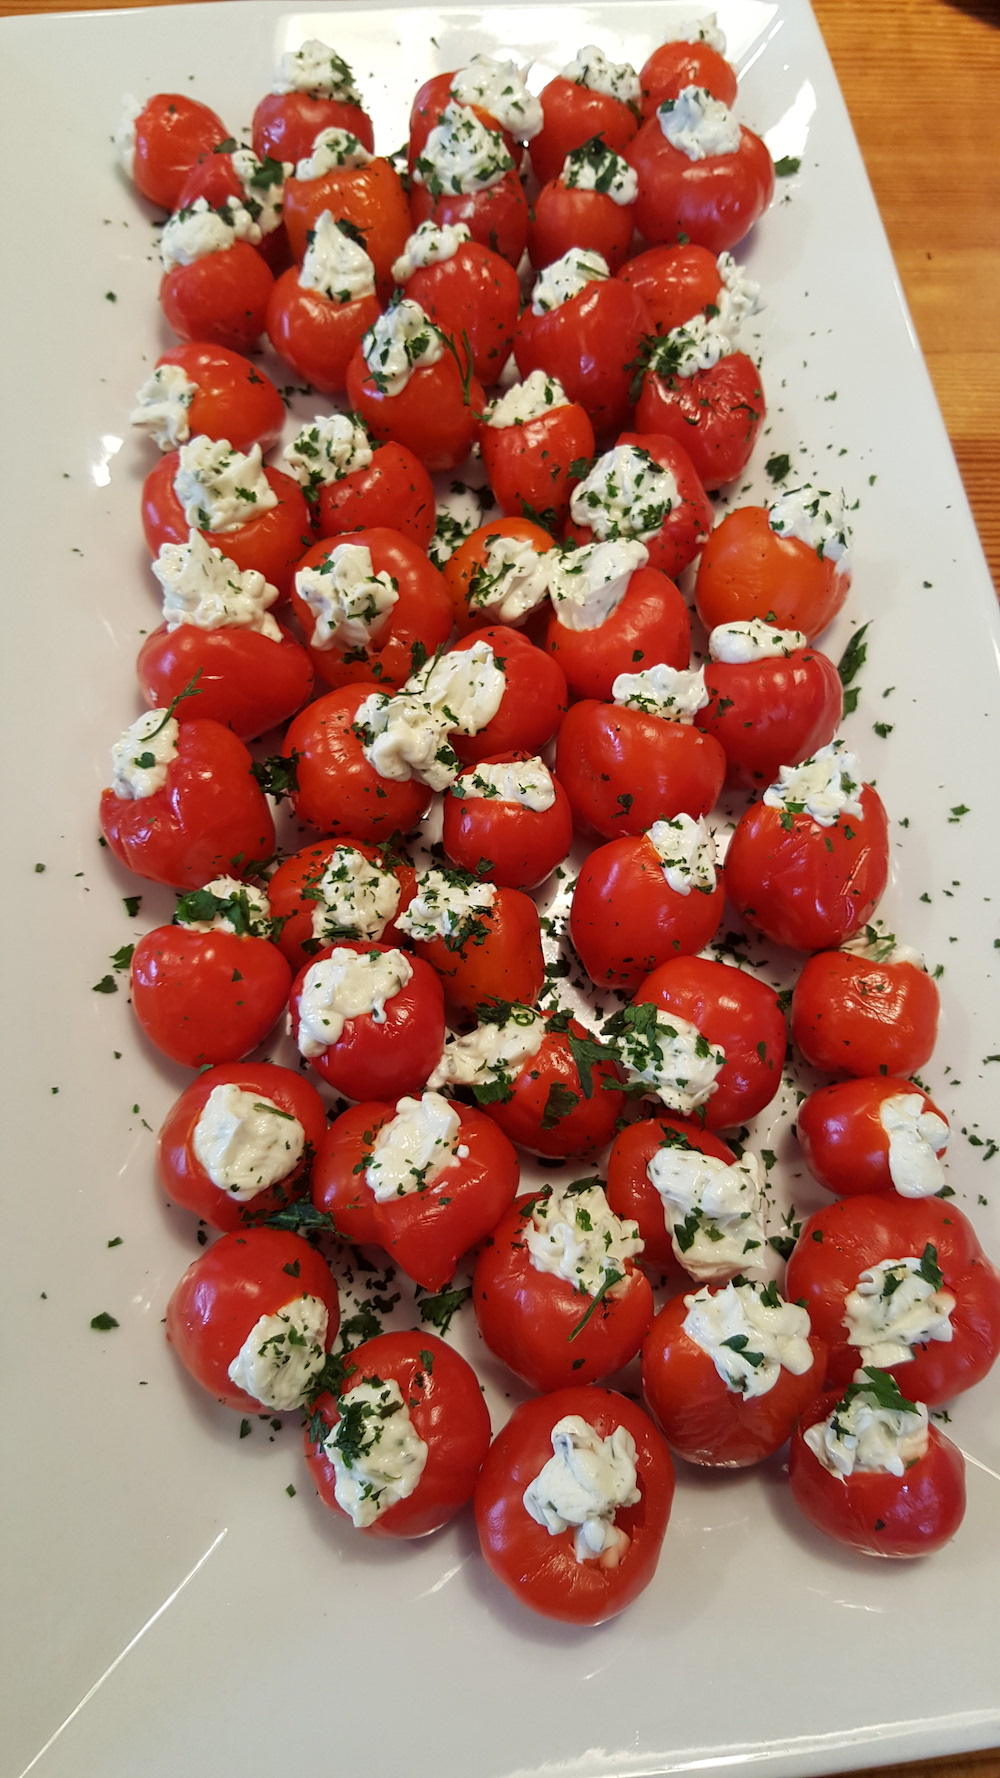 Another appetizer was stuffed Peppadews.